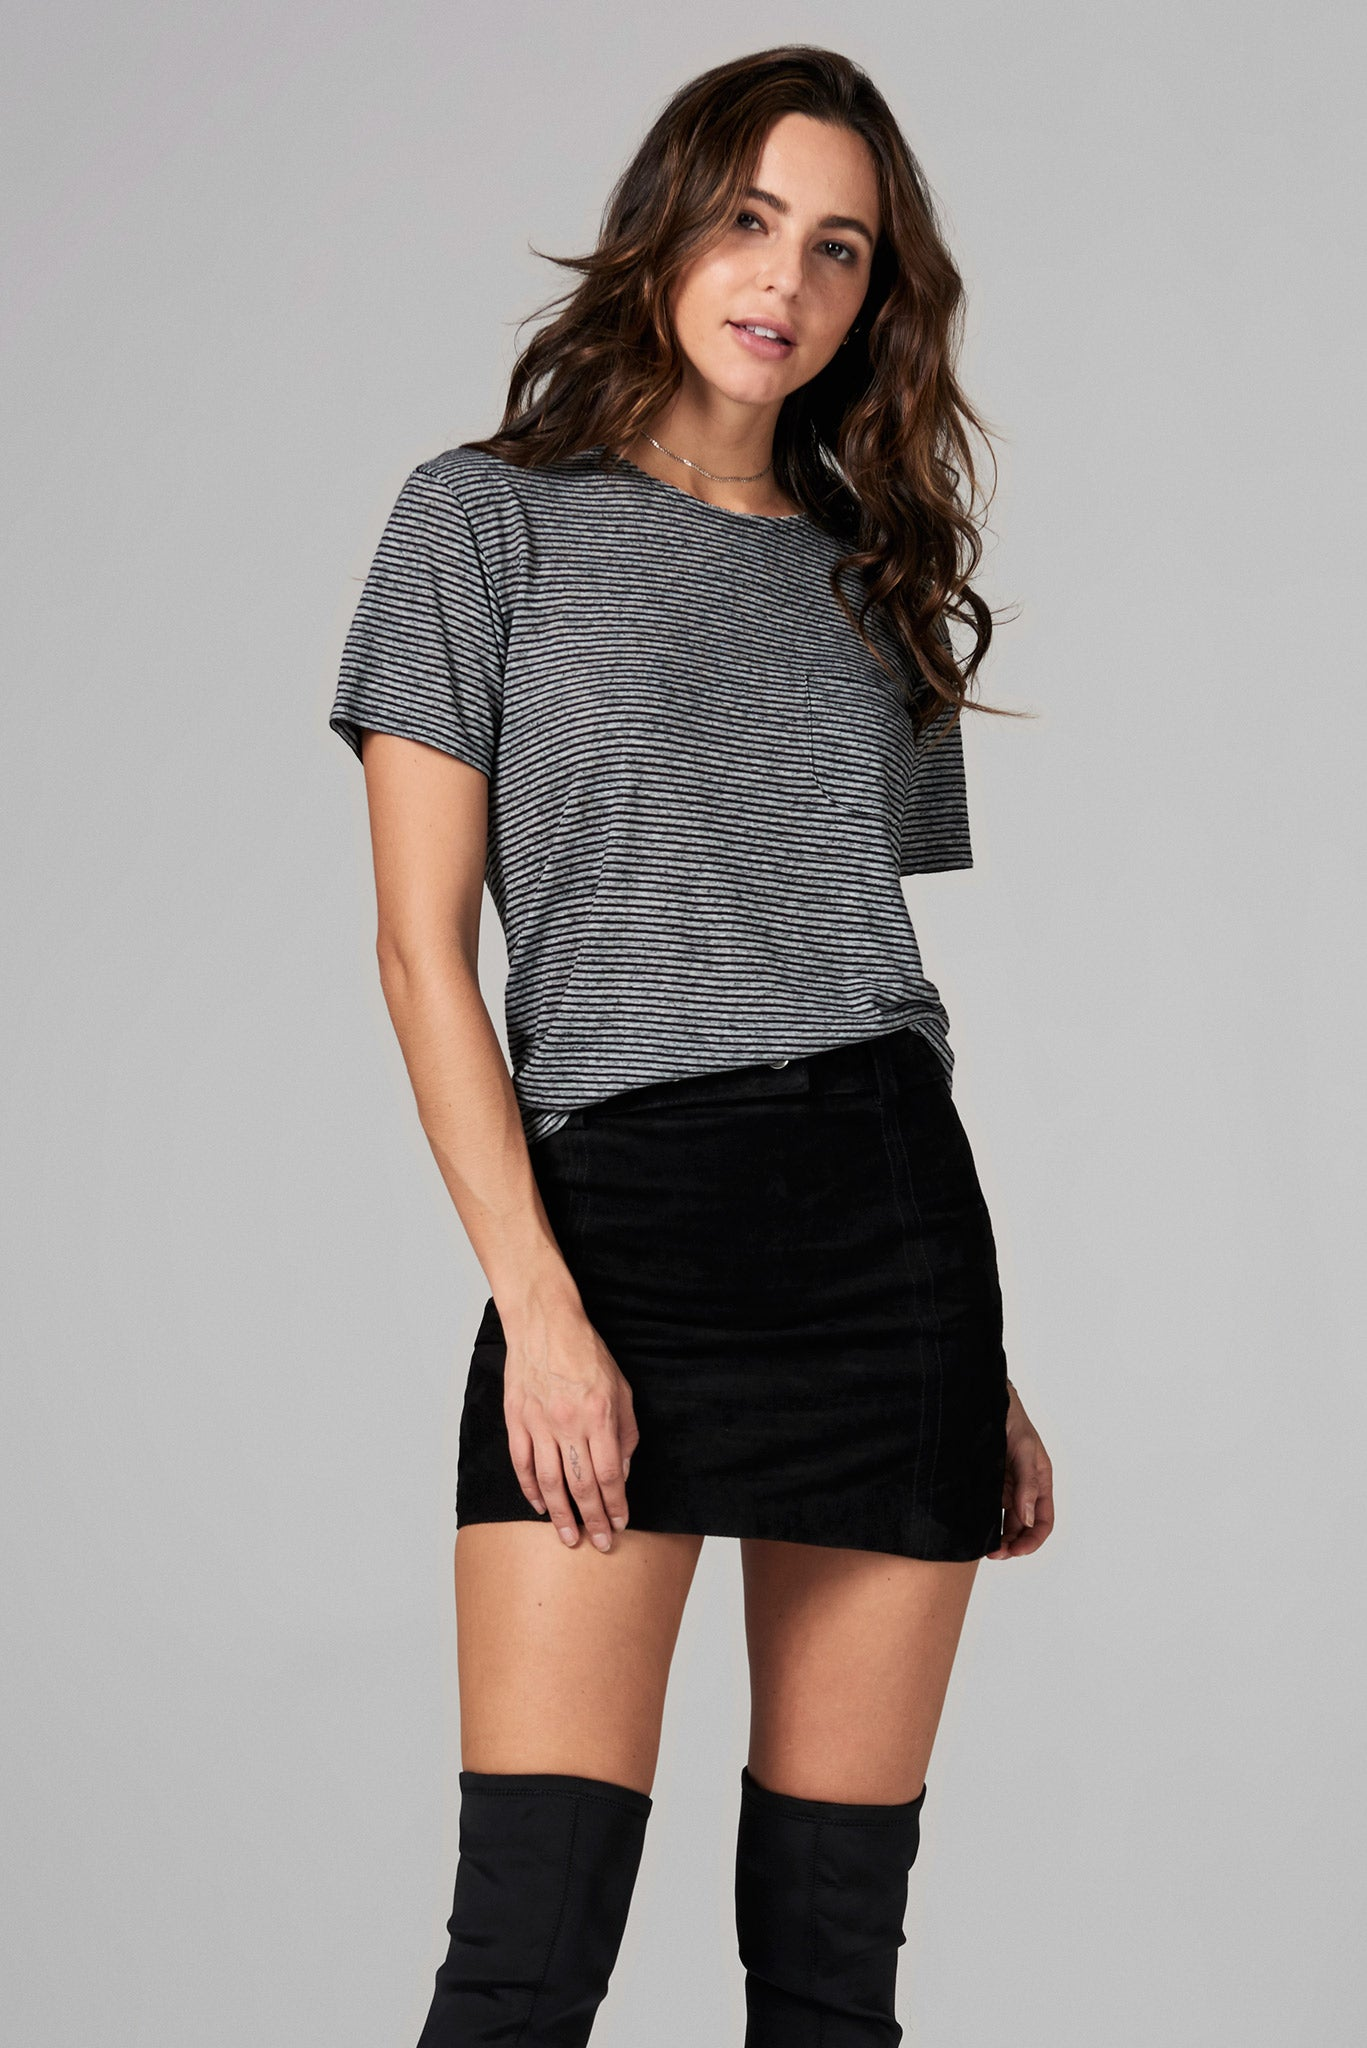 WOMEN'S POCKET SAILOR CREW NECK TEE - THIN STRIPE